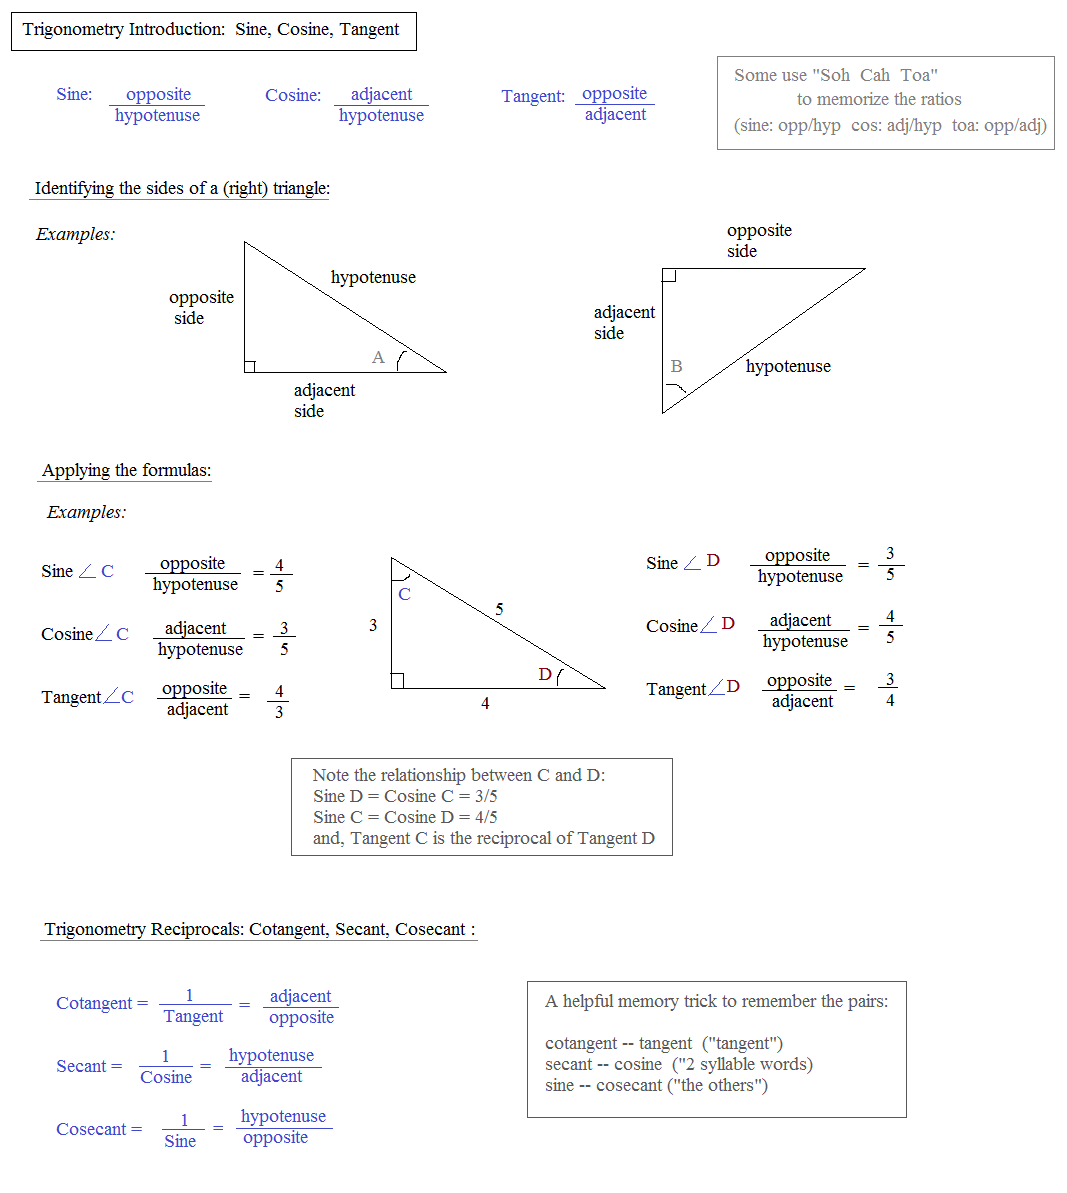 Worksheets Sine Cosine And Tangent Practice Worksheet Answers math plane notes on sine cosine and tangent reciprocals trigonometry introduction tangent